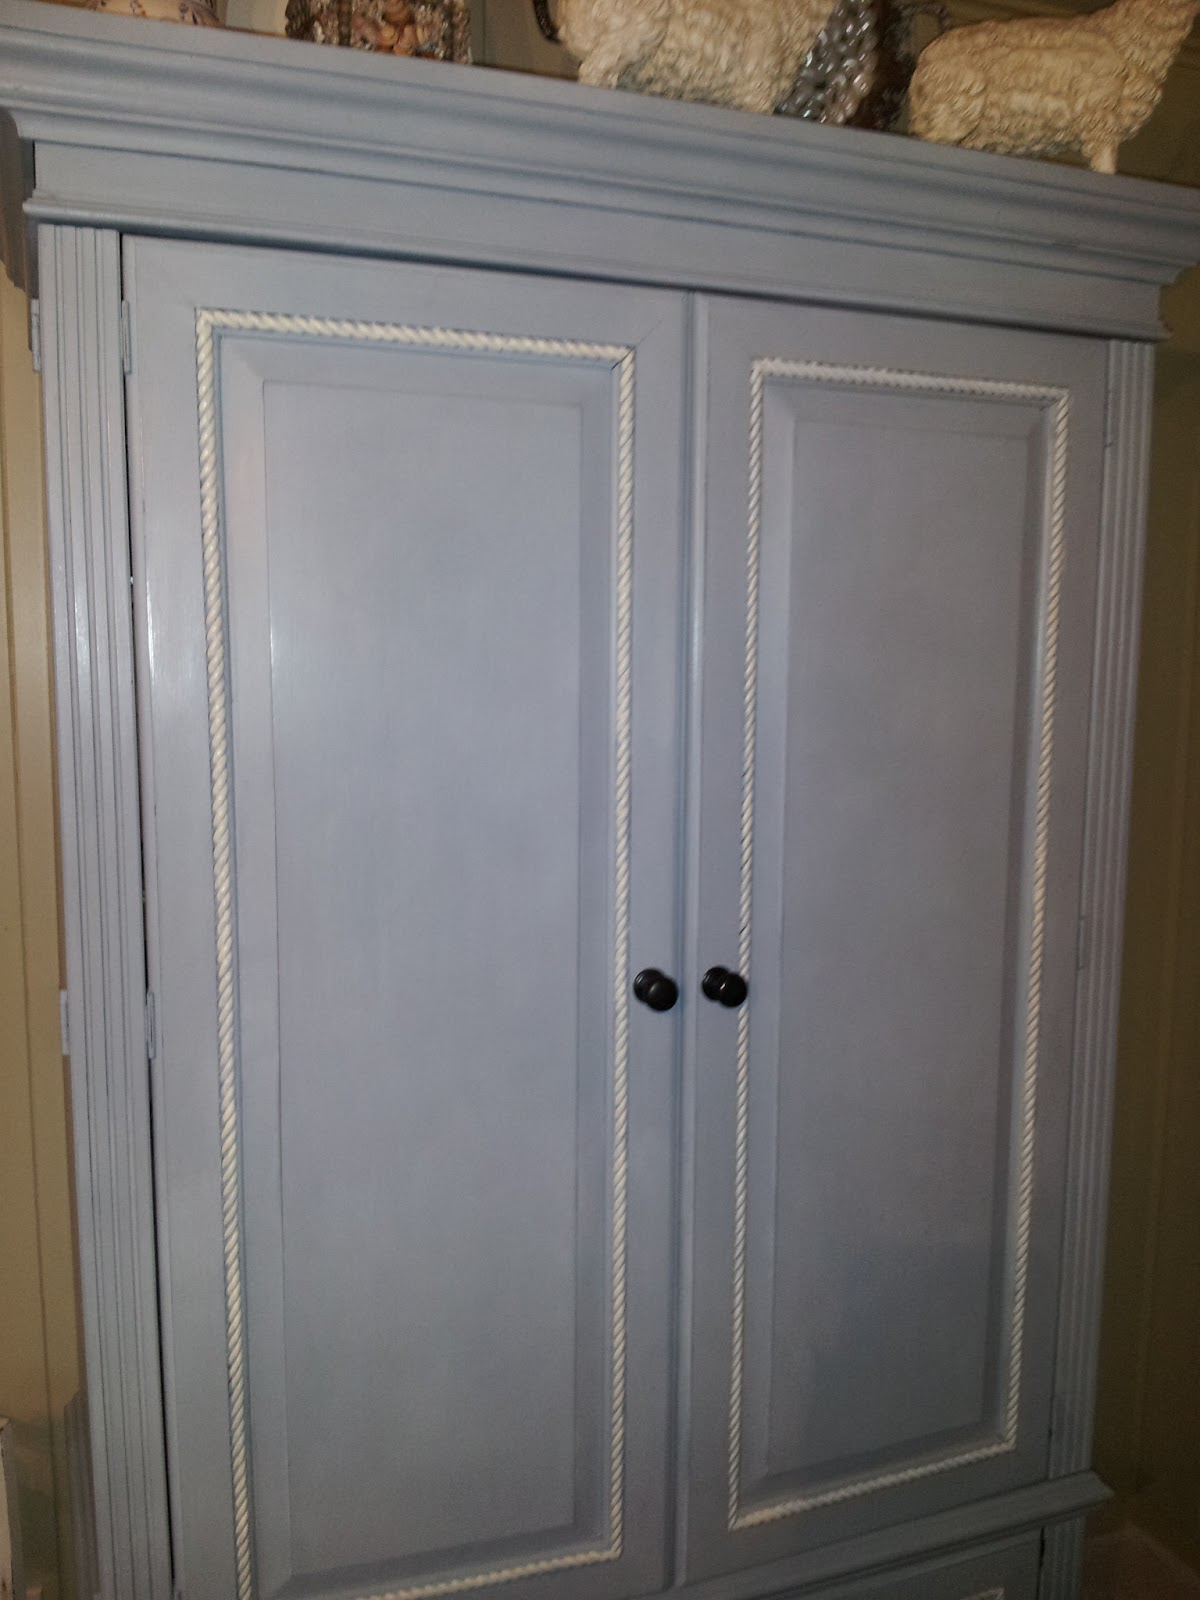 Chalk paint armoire makeover by lady butterbug for Chalk paint comparable to annie sloan